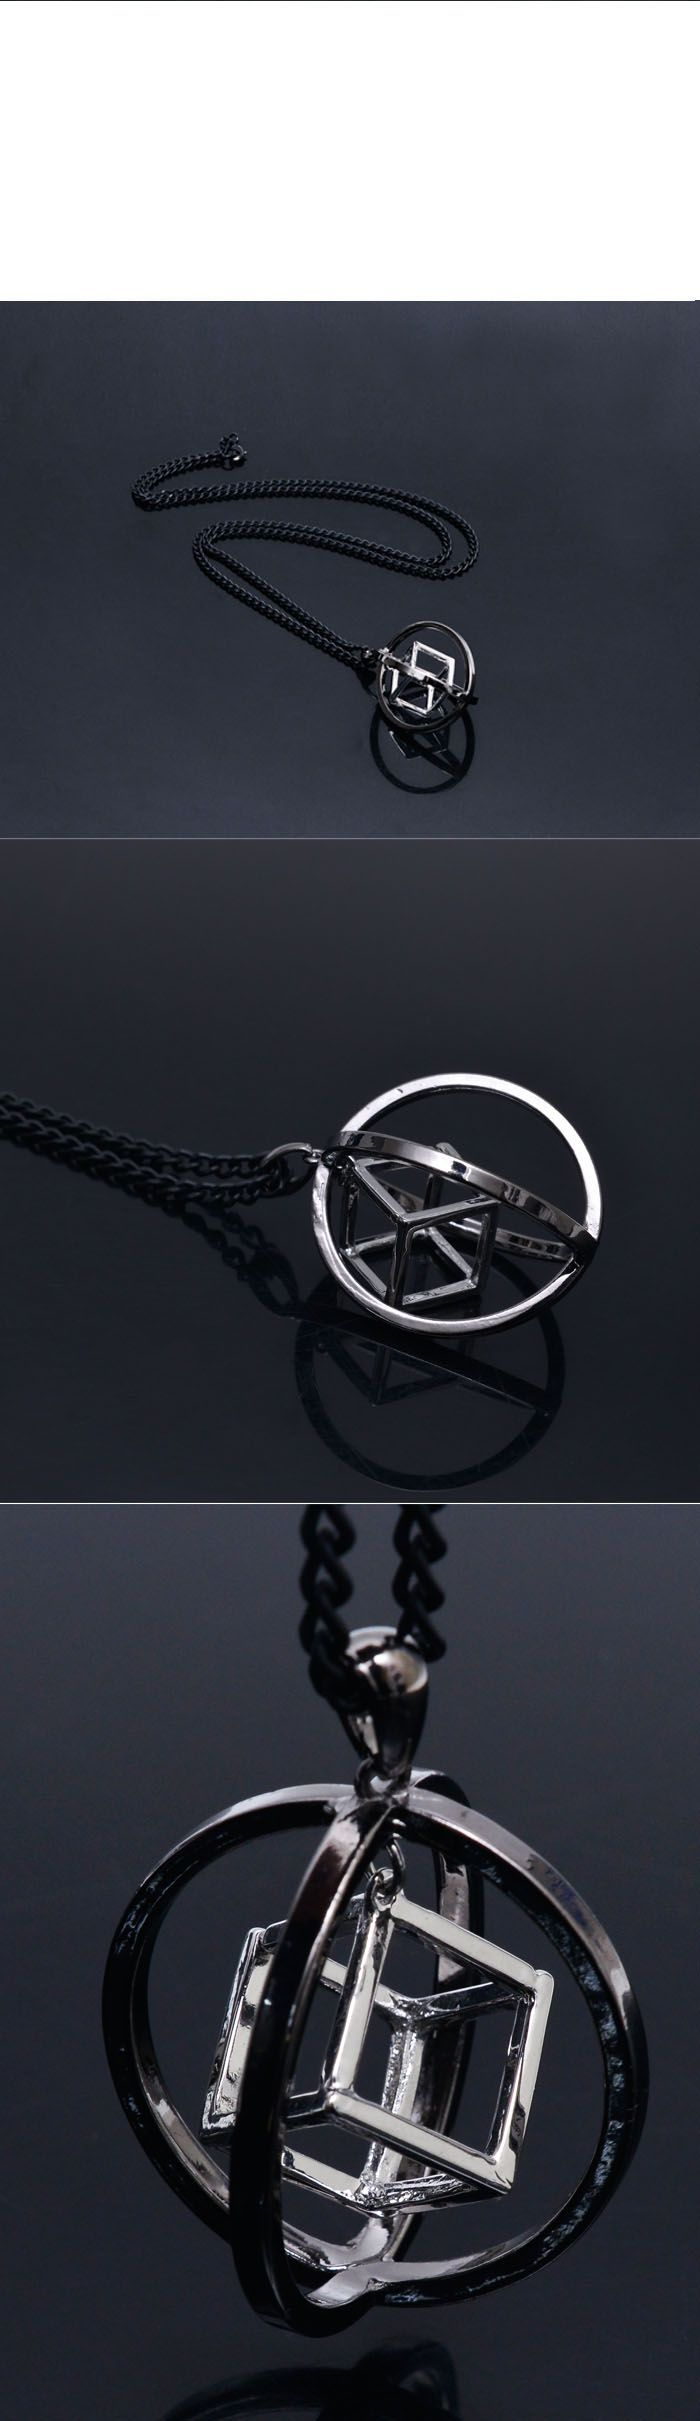 Accessories :: Necklaces :: Big Cyber Circle Square-Necklace 241 - Mens Fashion Clothing For An Attractive Guy Look